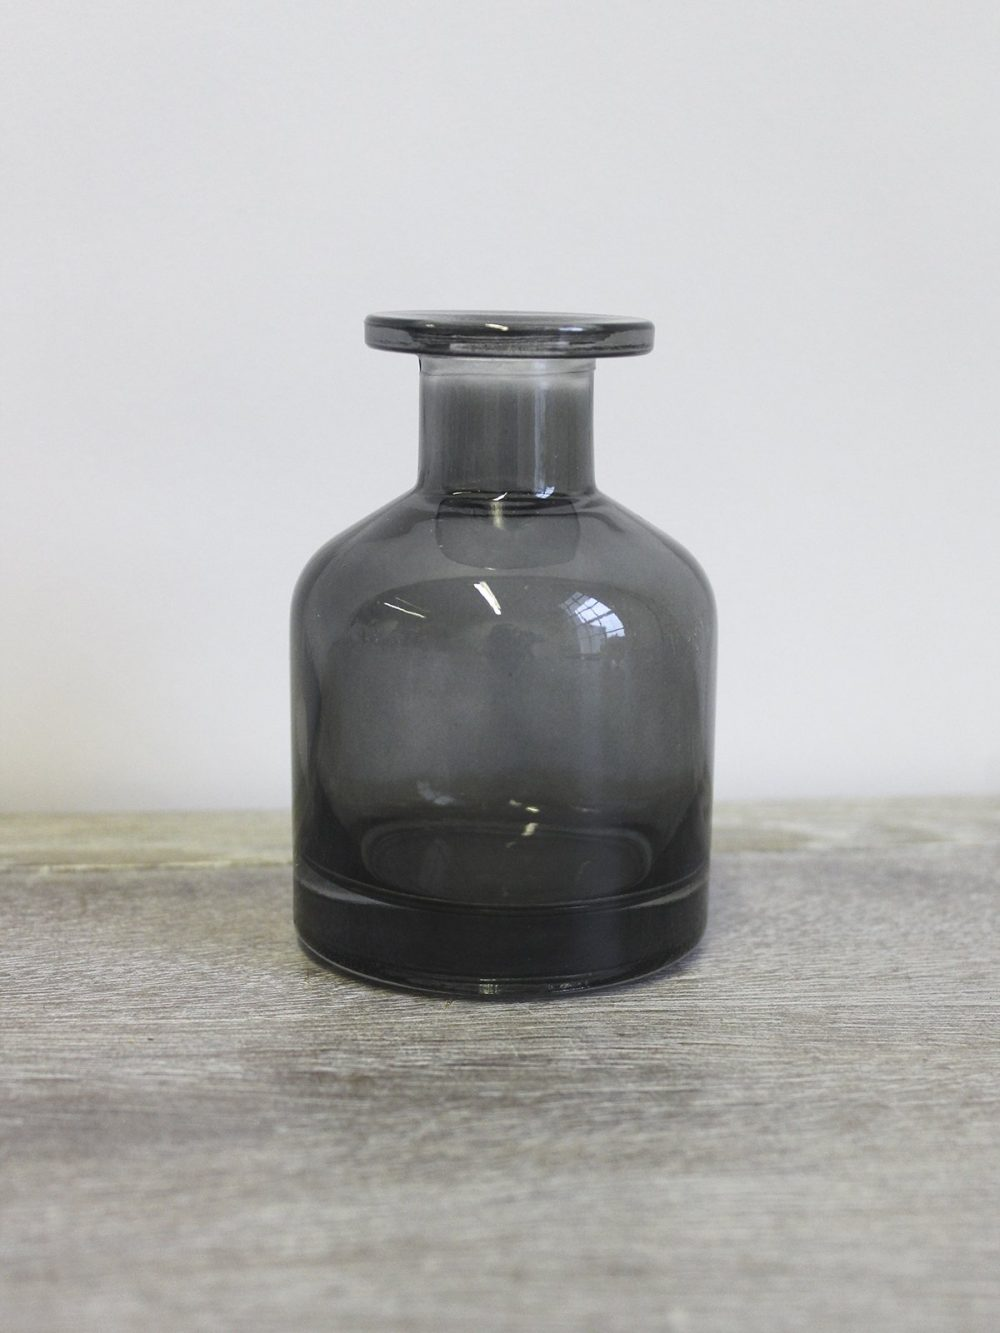 Smokey black Alchemist diffuser bottle